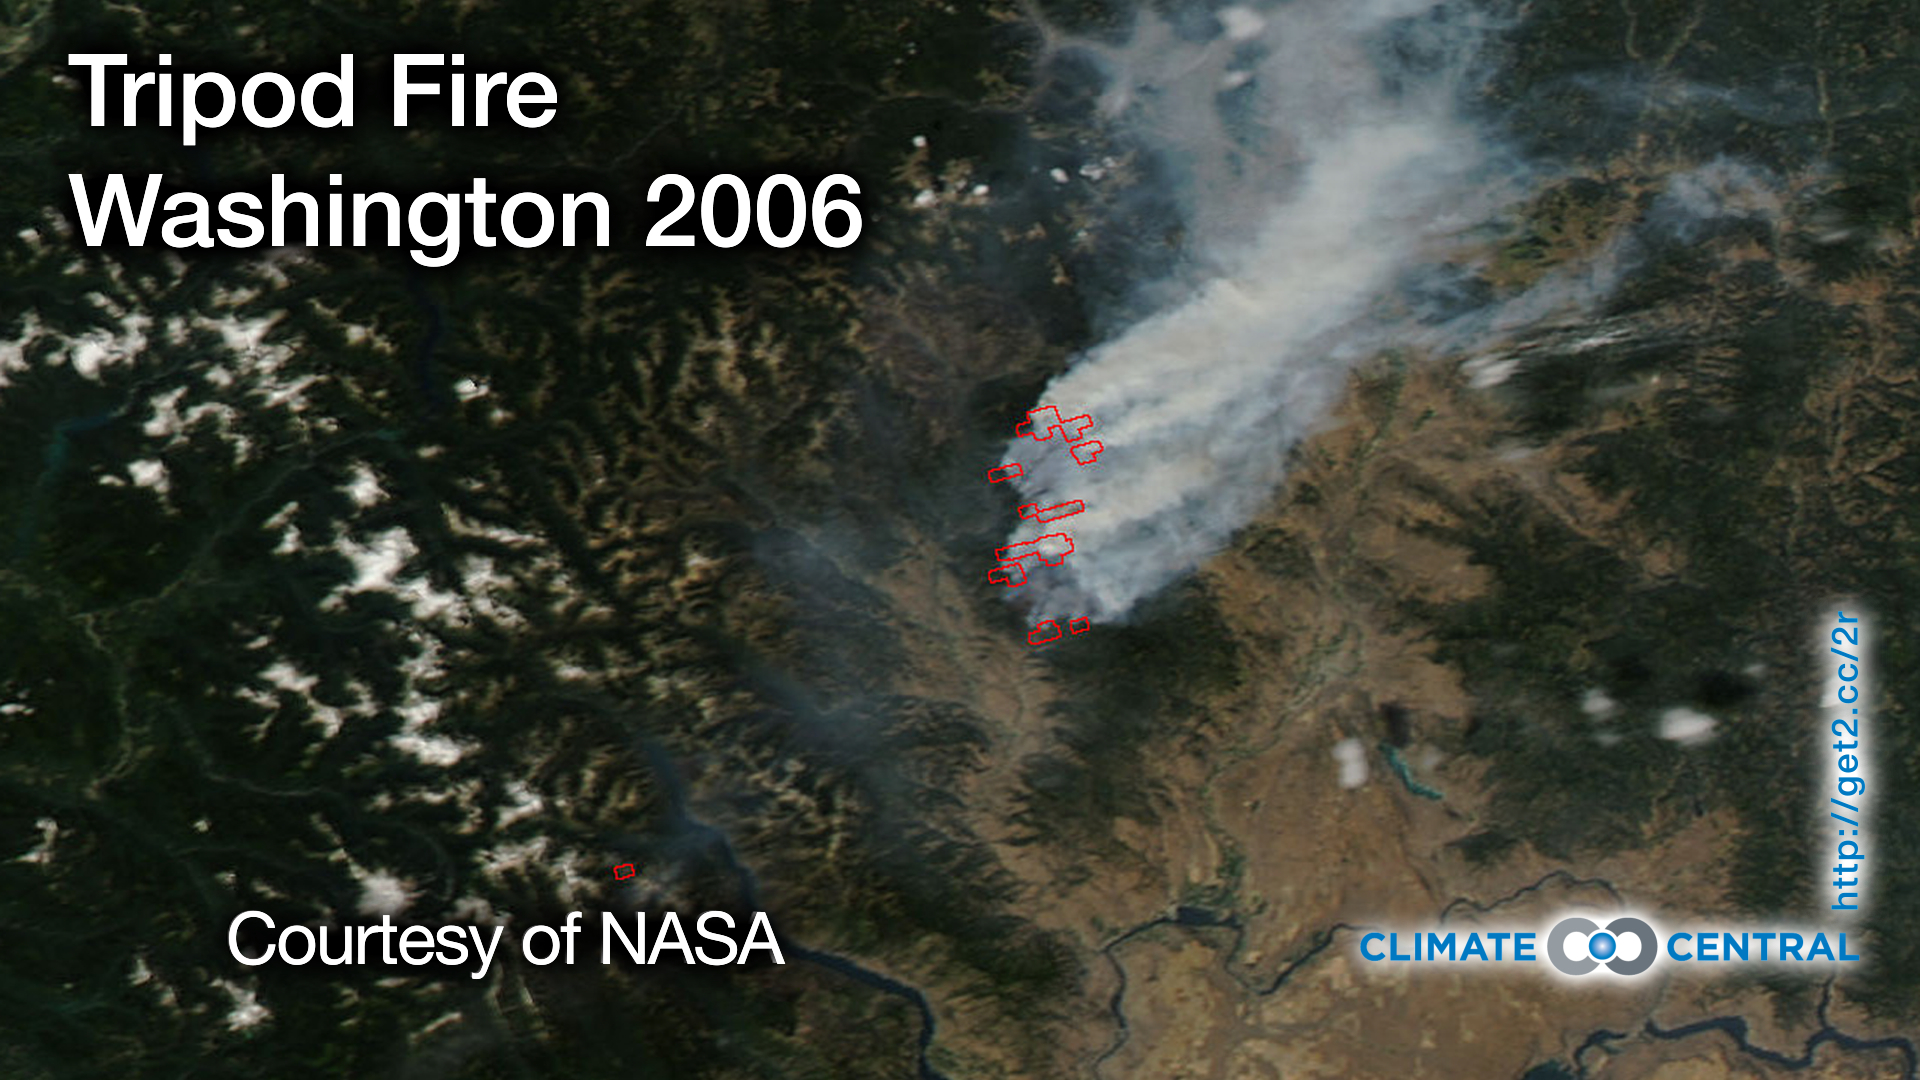 Tripod Fire Satellite View Climate Central